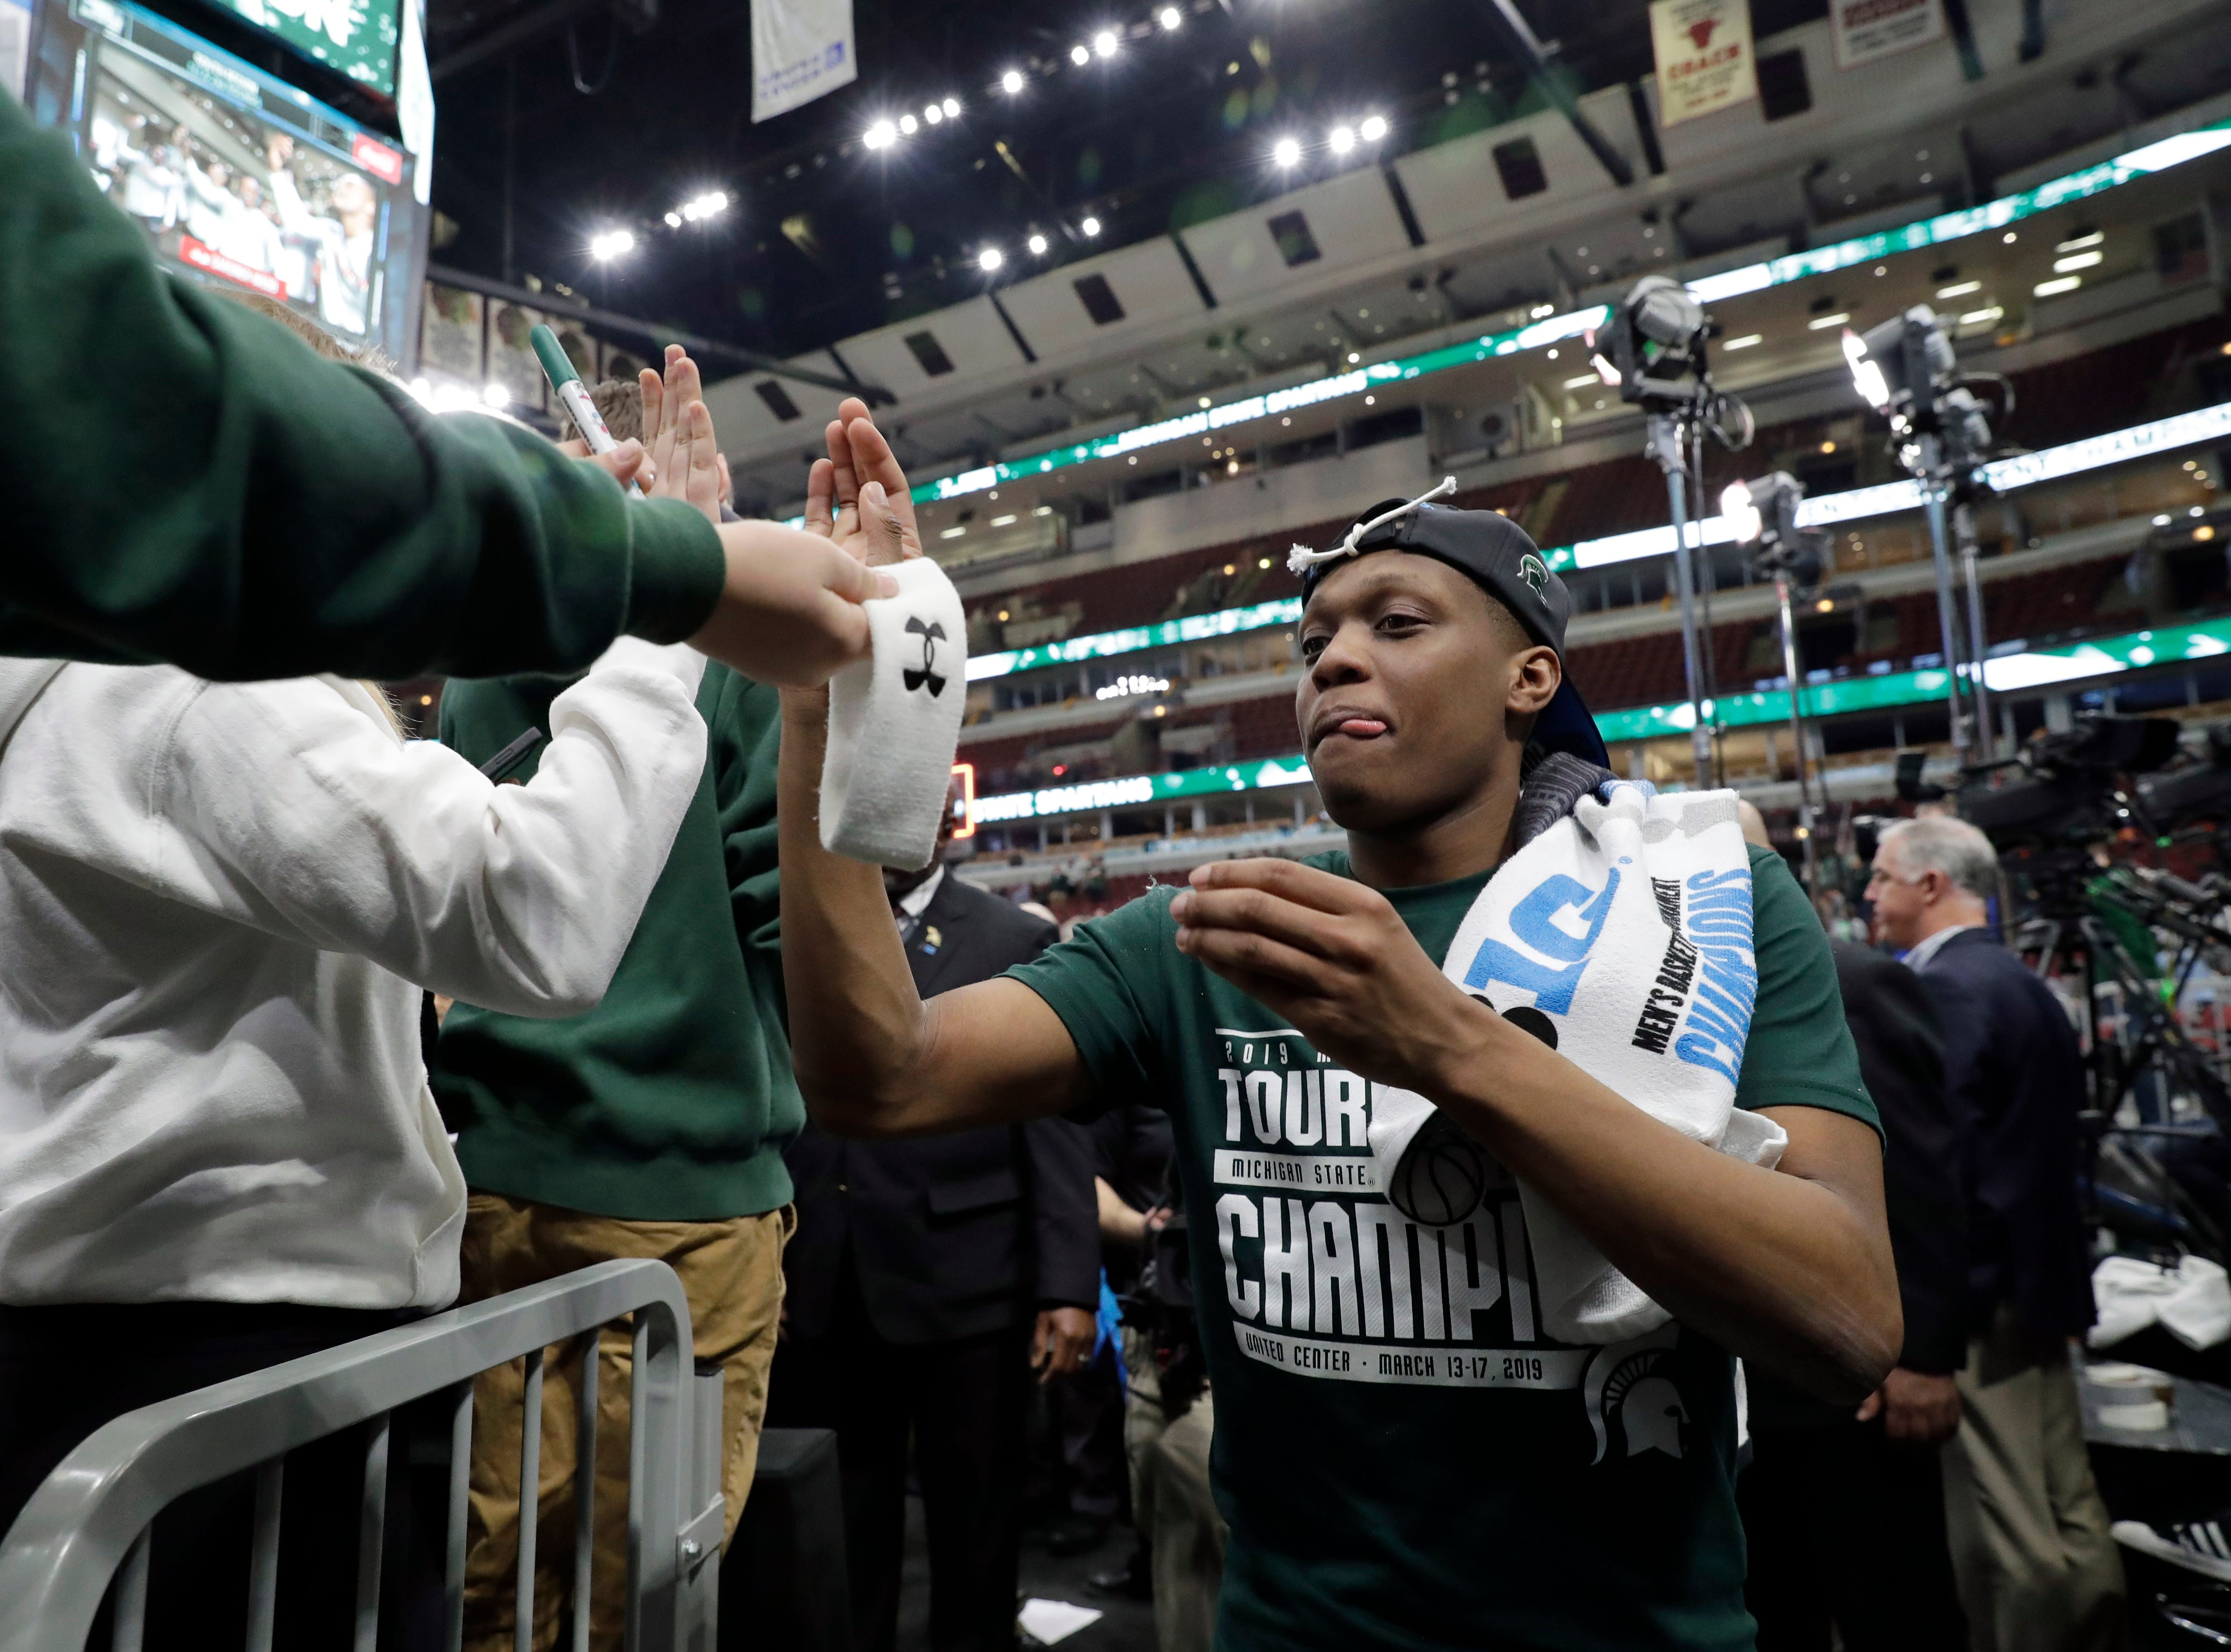 Michigan State's Cassius Winston celebrates after defeating Michigan 65-60 in an NCAA college basketball championship game in the Big Ten Conference tournament, Sunday, March 17, 2019, in Chicago. (AP Photo/Nam Y. Huh)